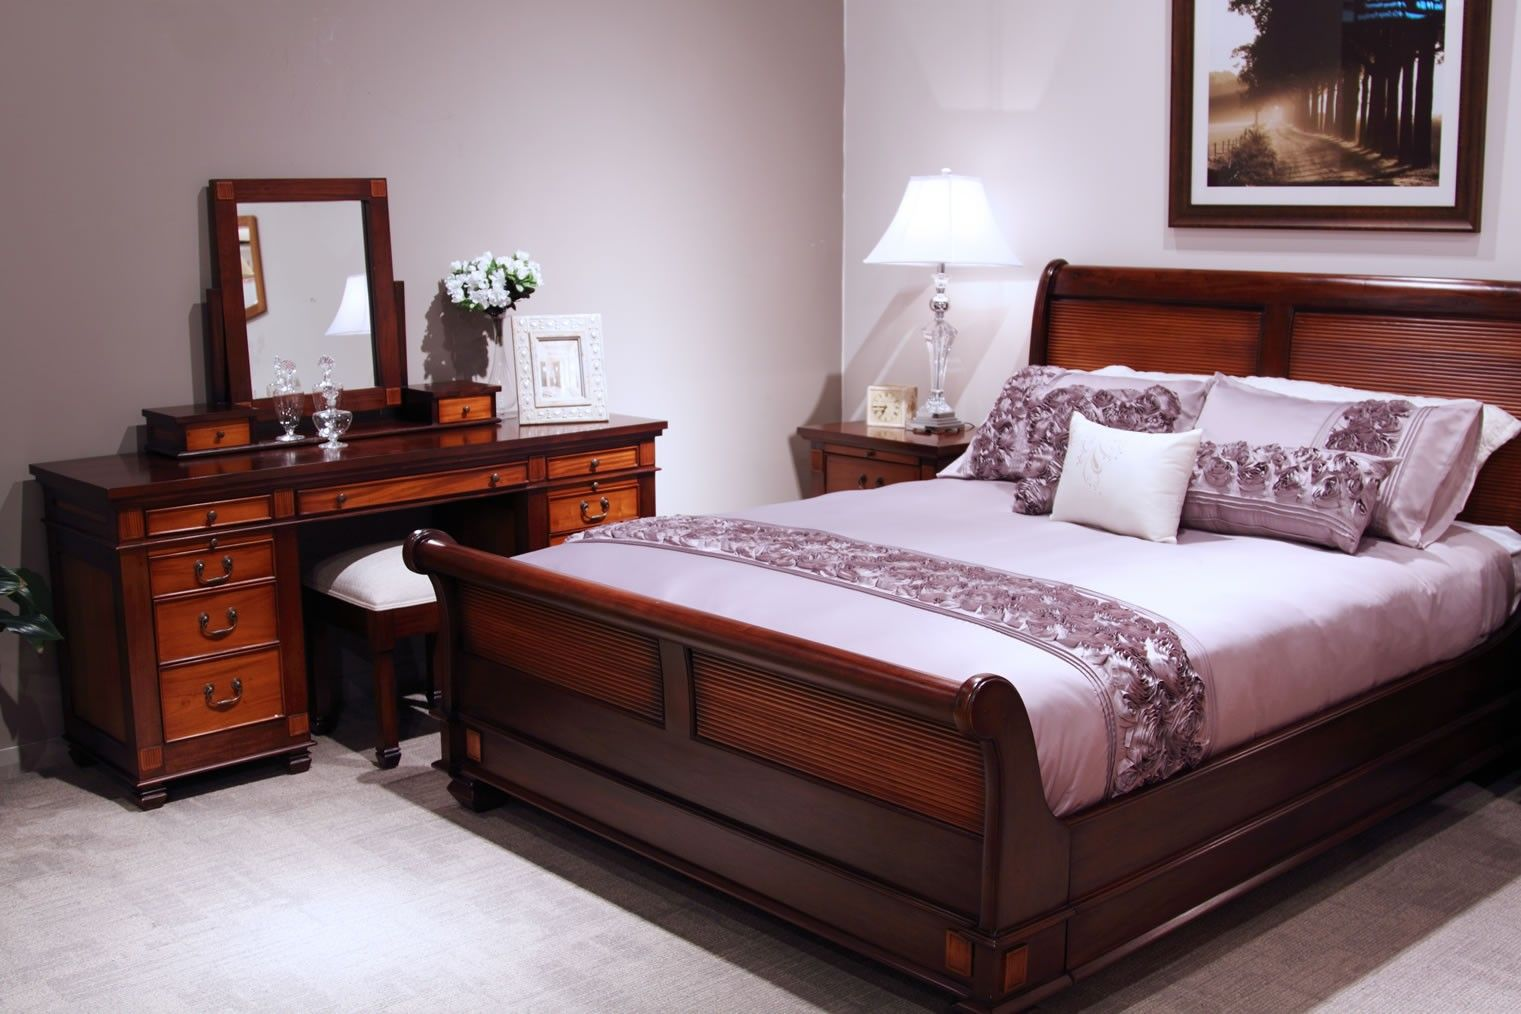 Bedroom chelmsford mahogany queen b on mahogany bedroom furniture sets suites chelmsford queen bed on adadisini info